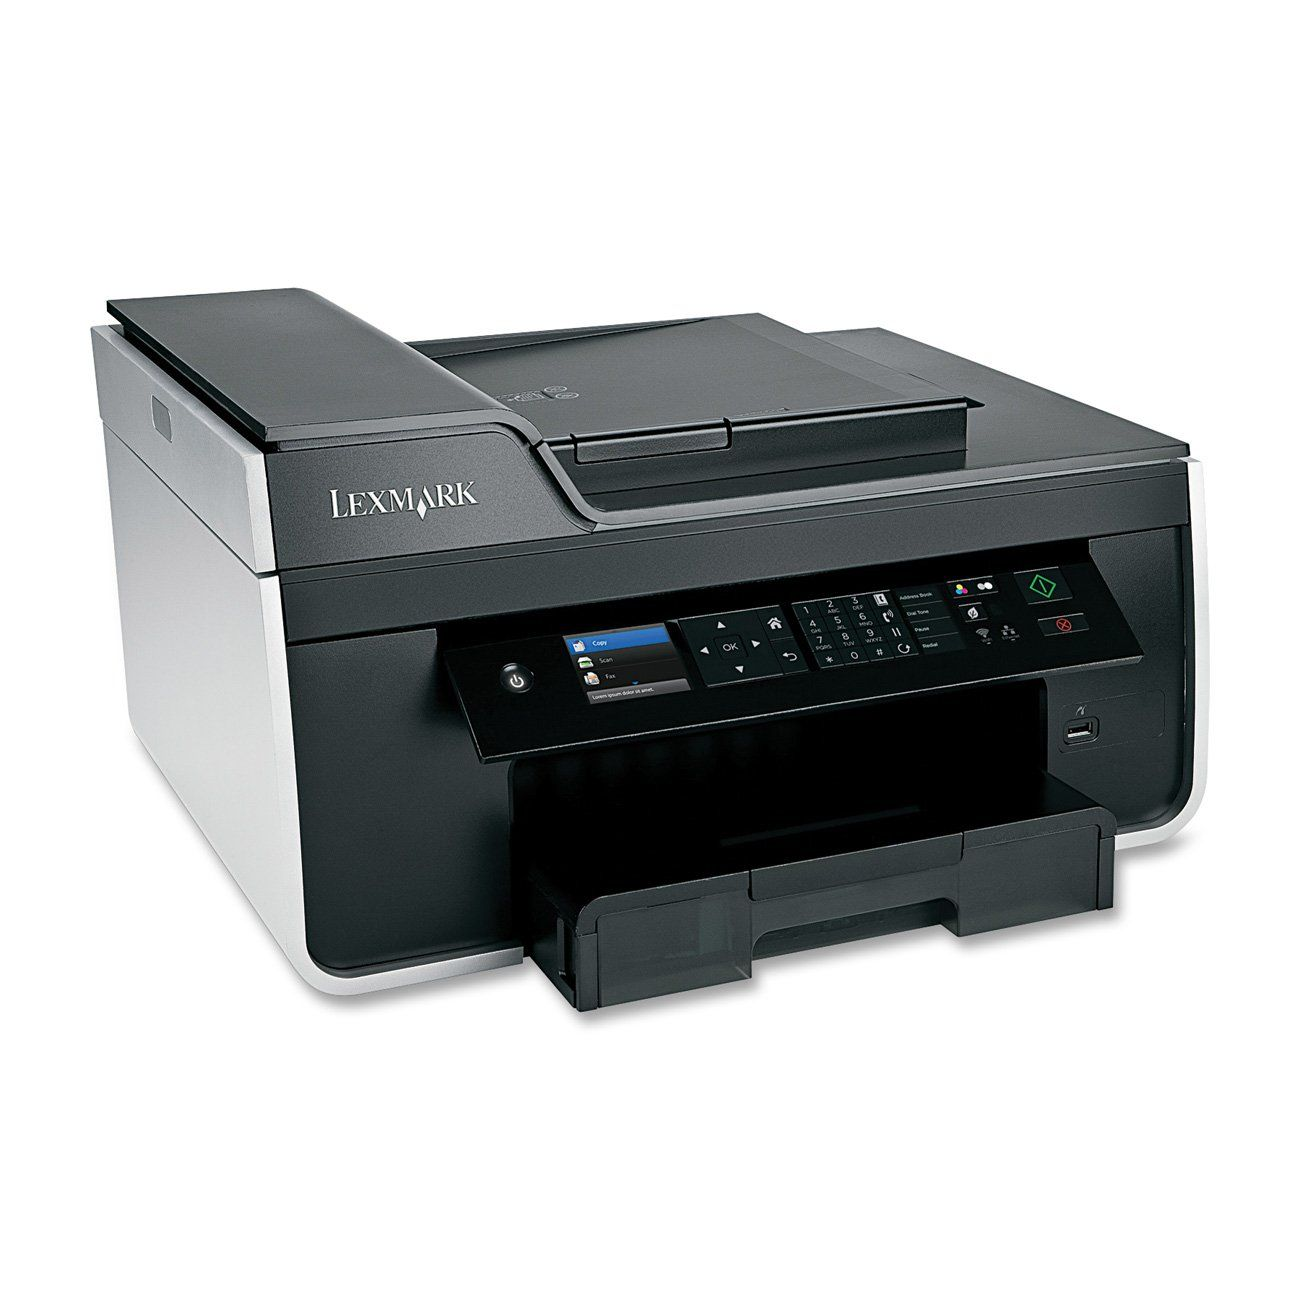 Lexmark Pro715 Wireless Inkjet All In One Printer With Scanner Copier And Fax